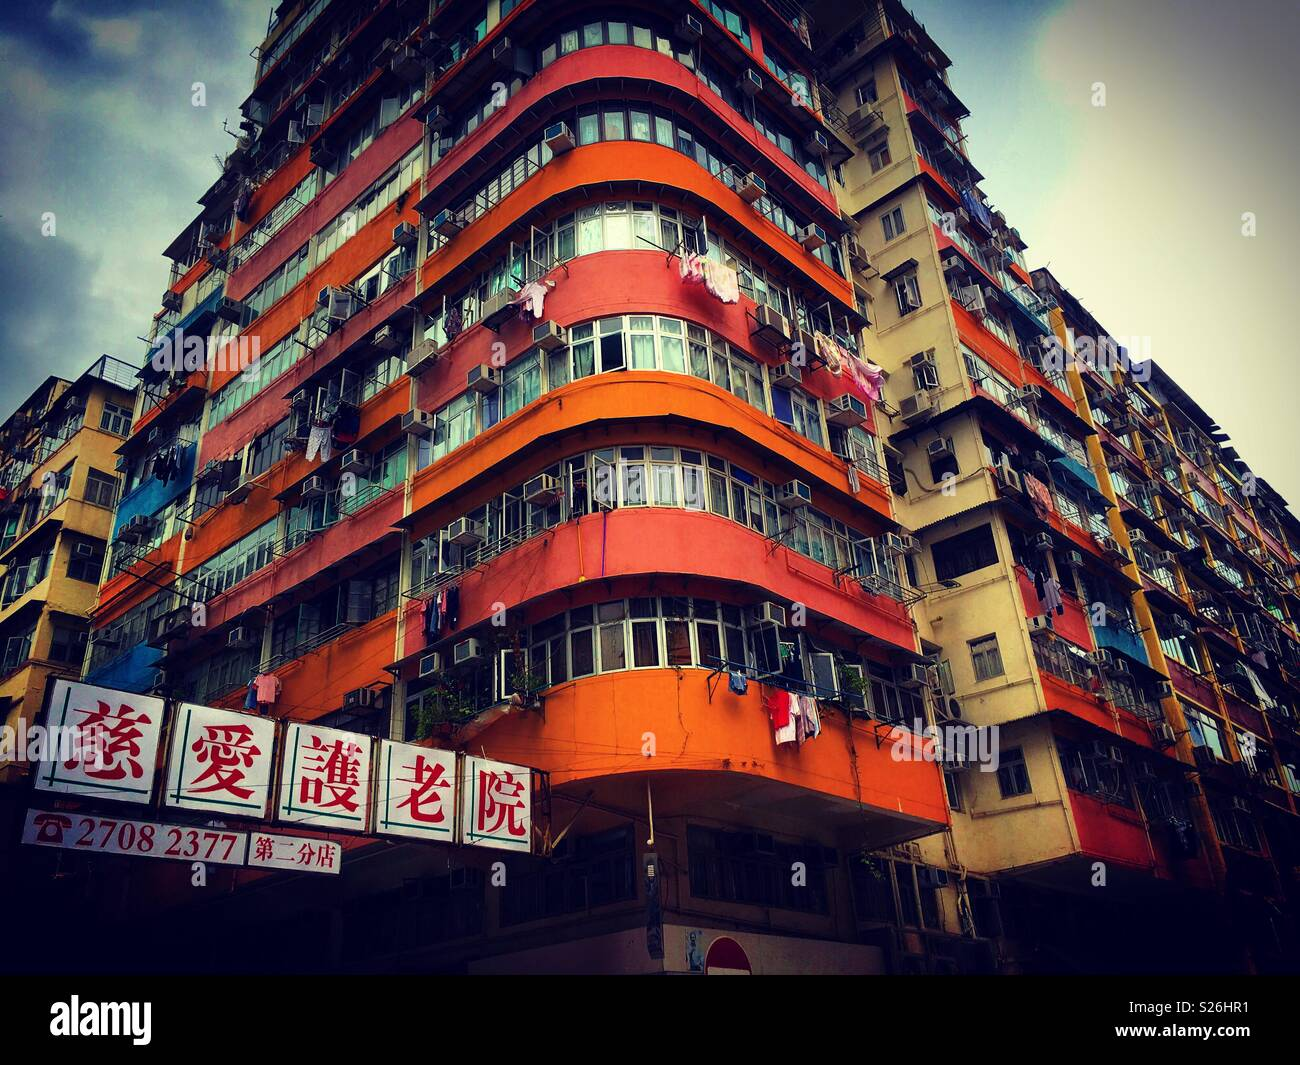 Hong kong. Kowloon side. Mongkok area with its typical old building tower - Stock Image